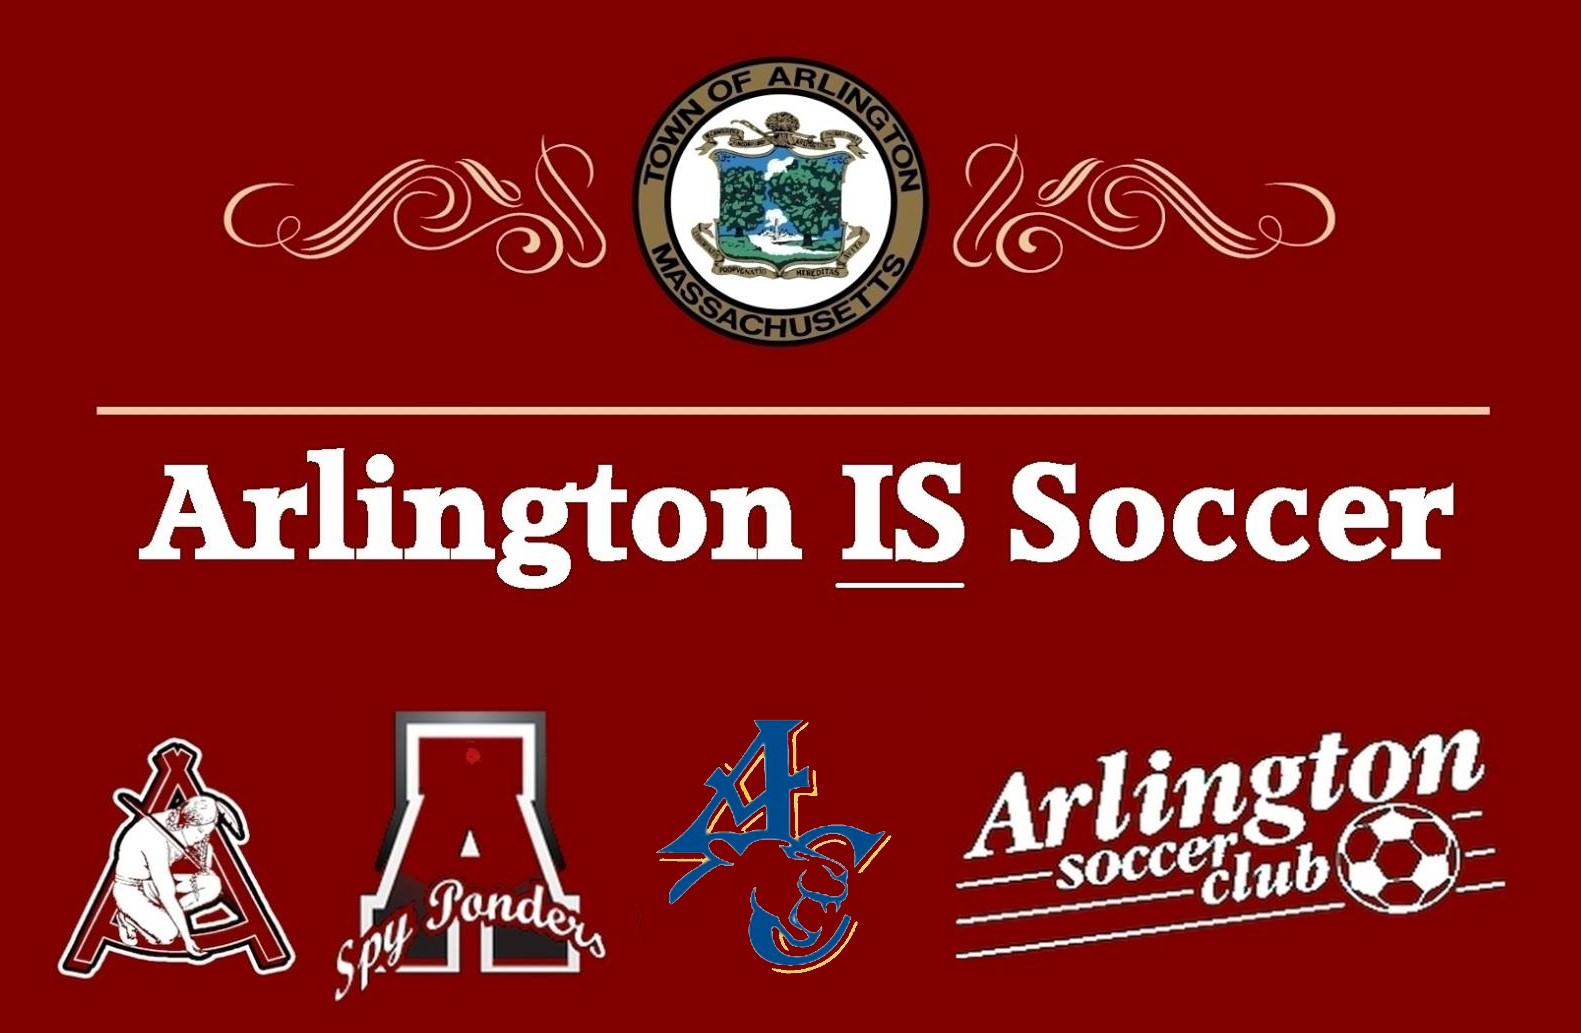 Arlington IS Soccer Events On Hold